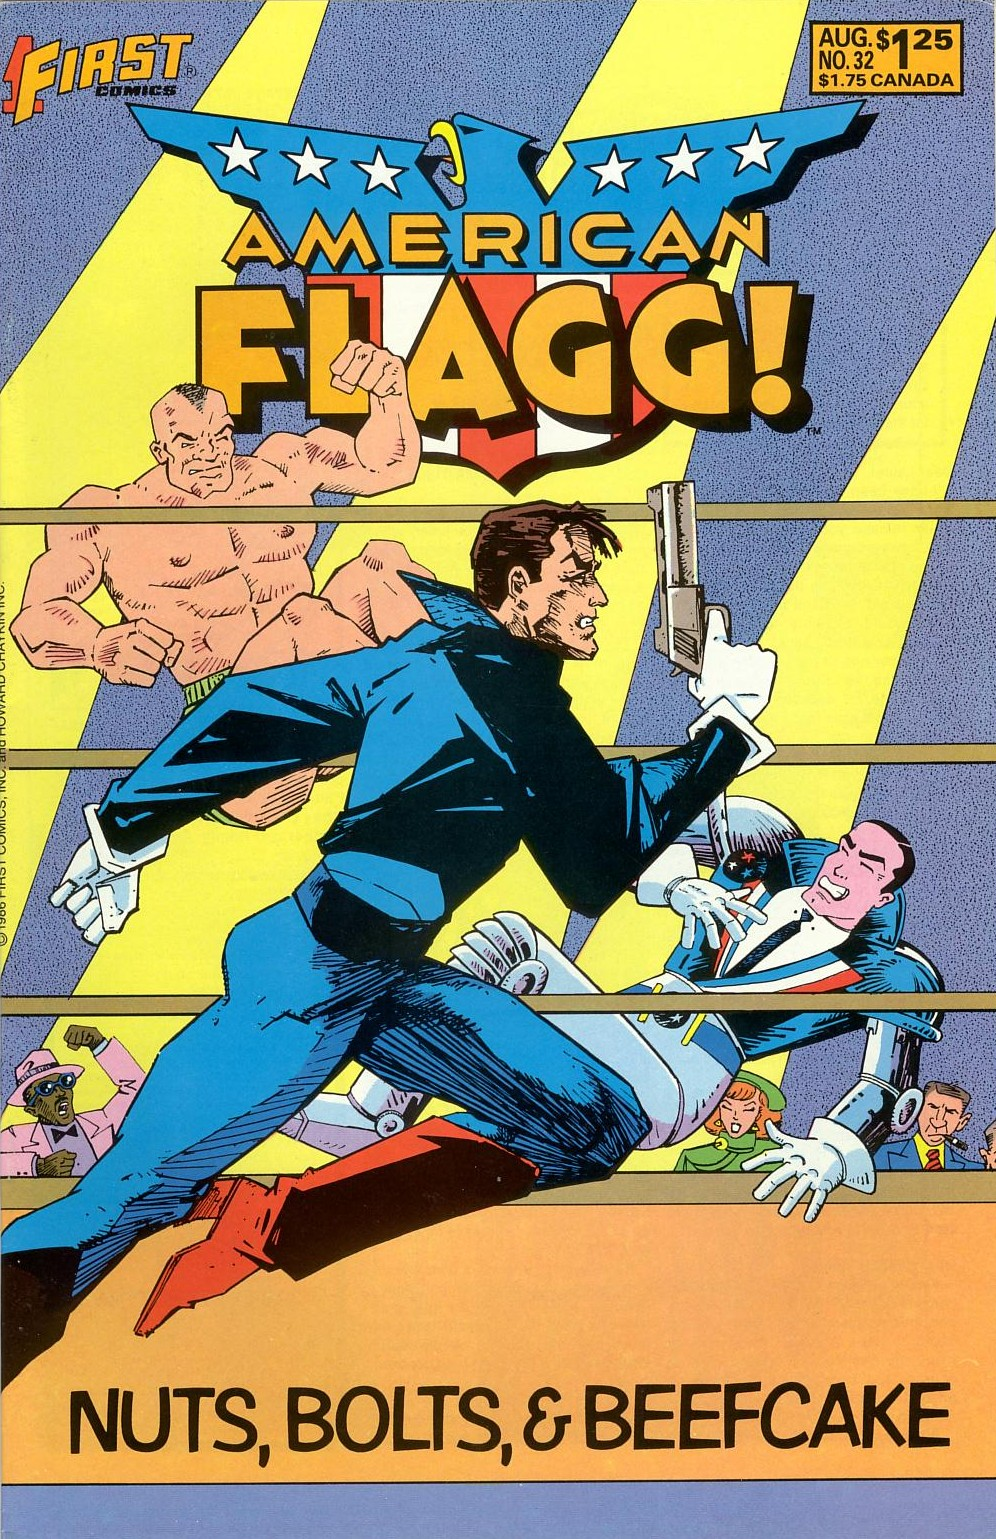 Read online American Flagg! comic -  Issue #32 - 1